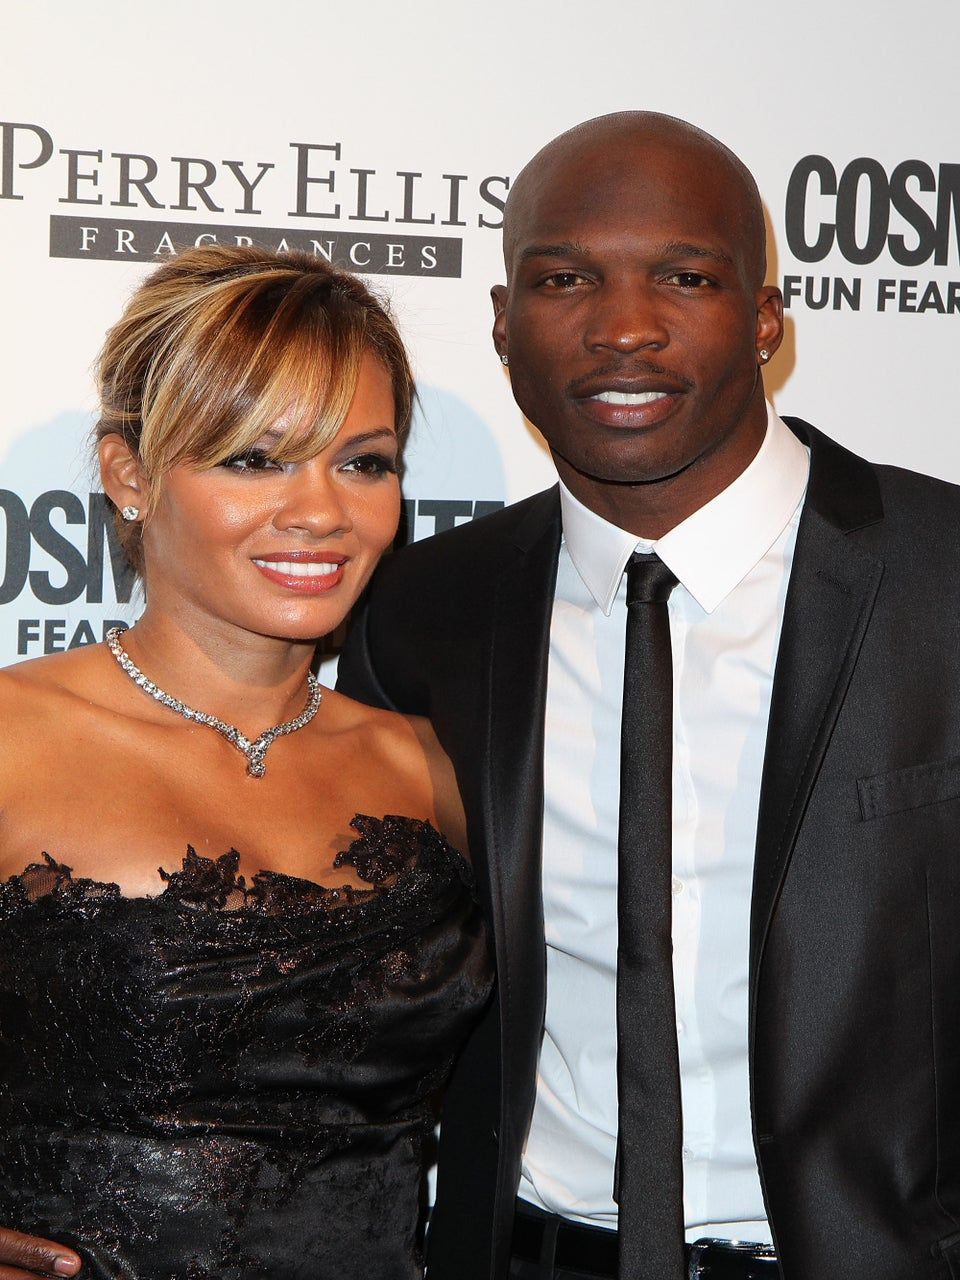 Chad Johnson Arrested for Domestic Violence, Reportedly Head-butts Evelyn Lozada